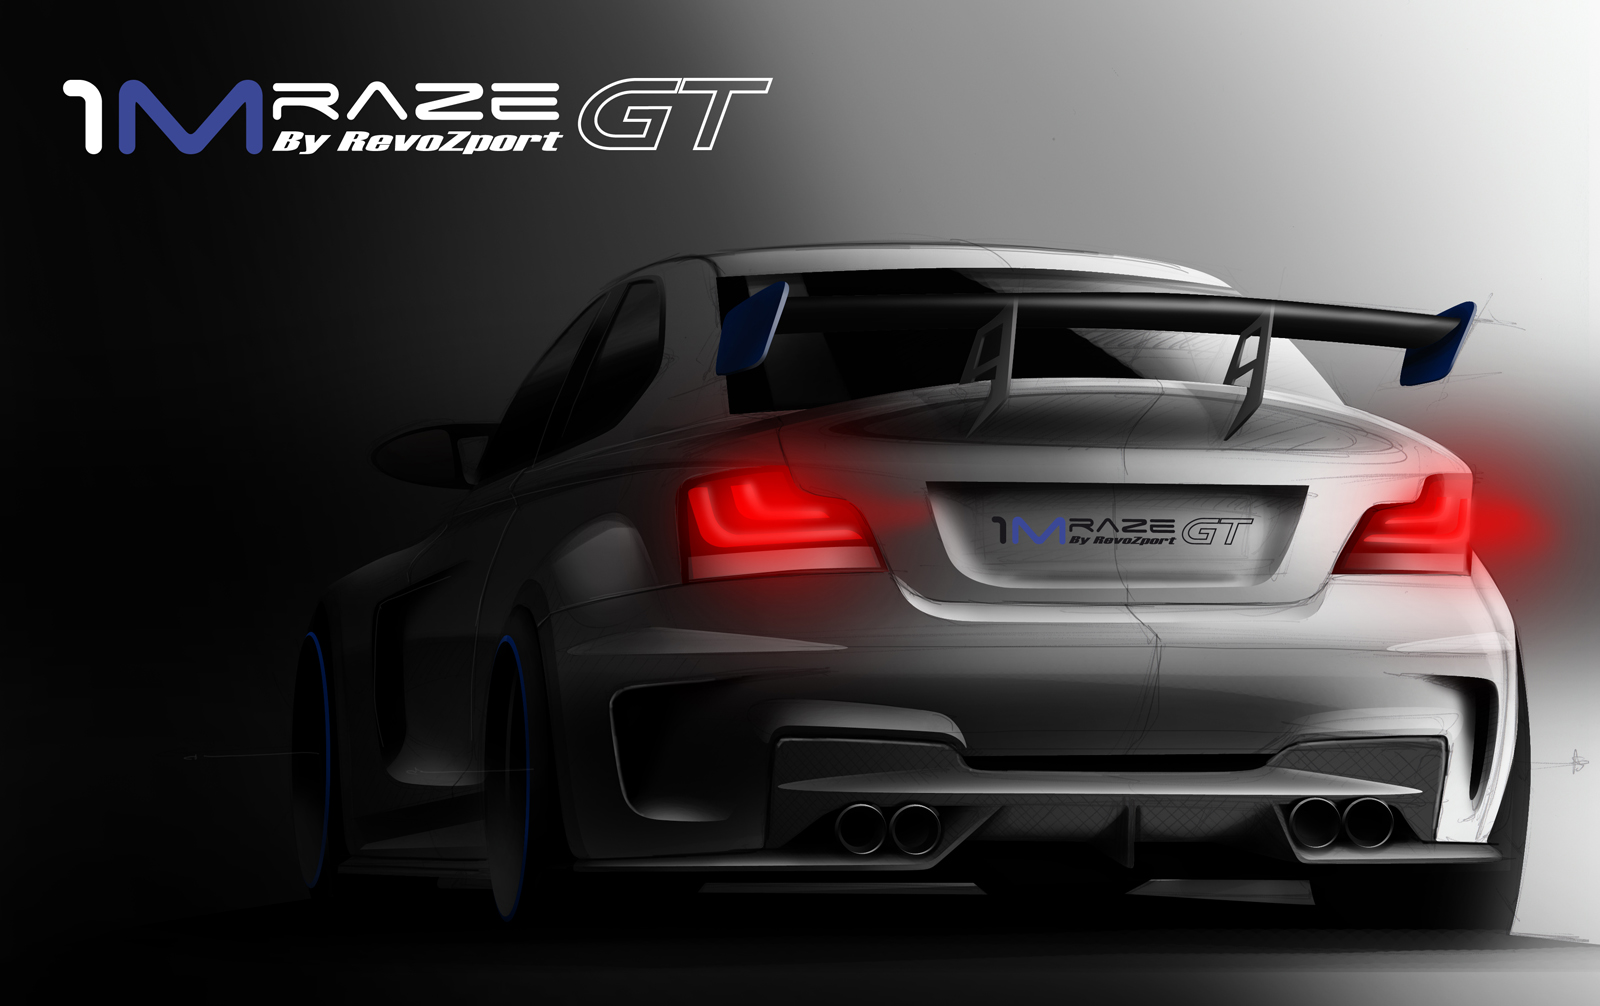 Teaser of BMW 1M Raze GT wide body kit